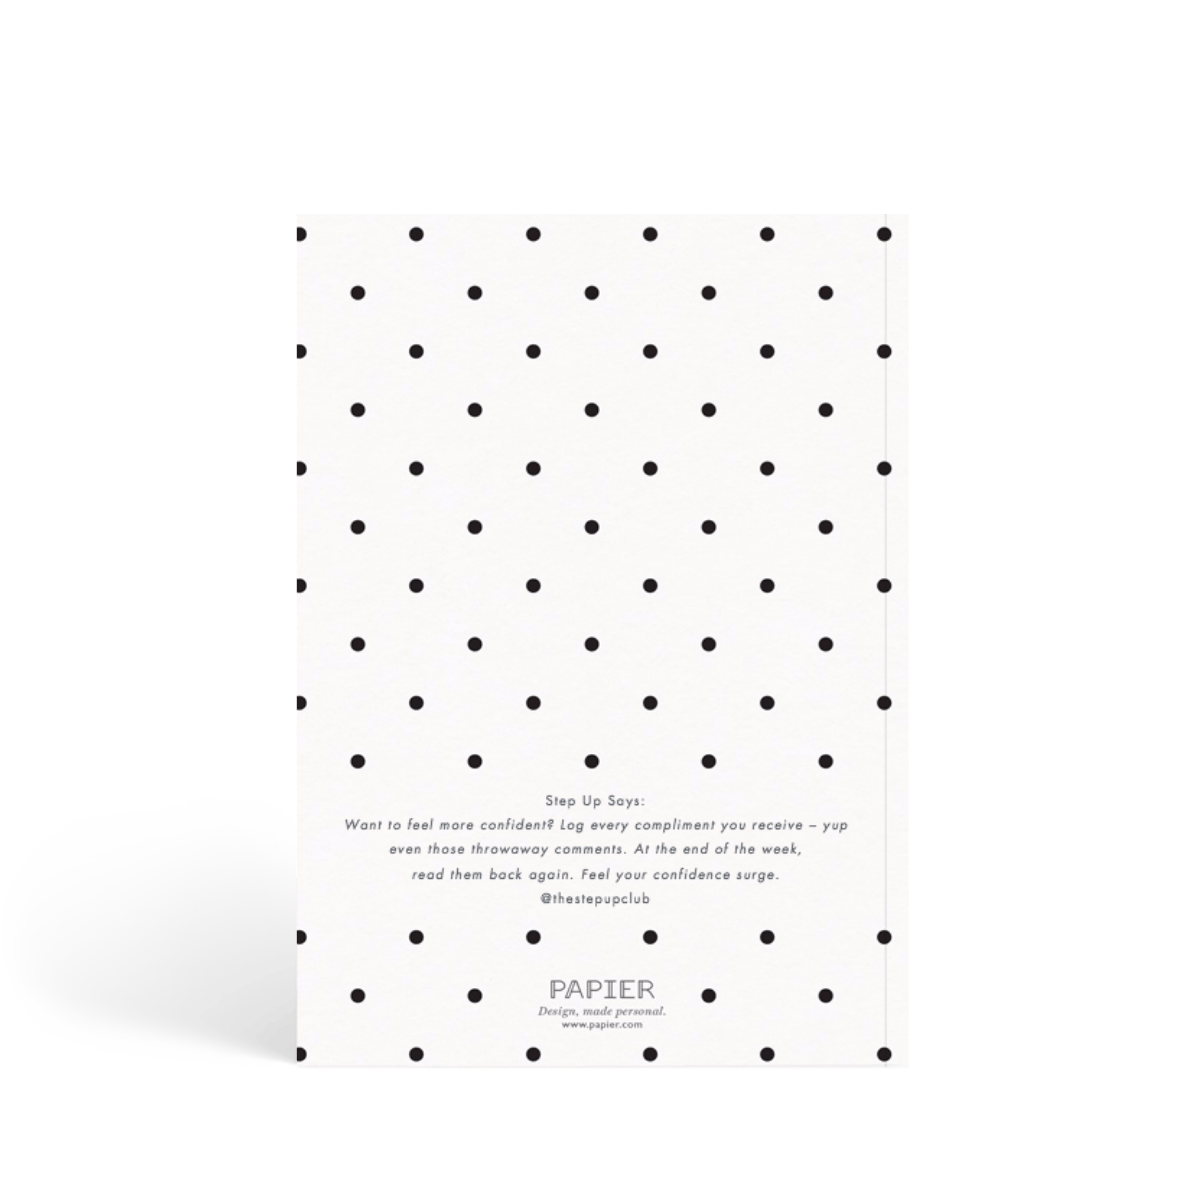 Https%3a%2f%2fwww.papier.com%2fproduct image%2f19876%2f5%2fpolka dots confidence notes 5088 back 1487858430.png?ixlib=rb 1.1